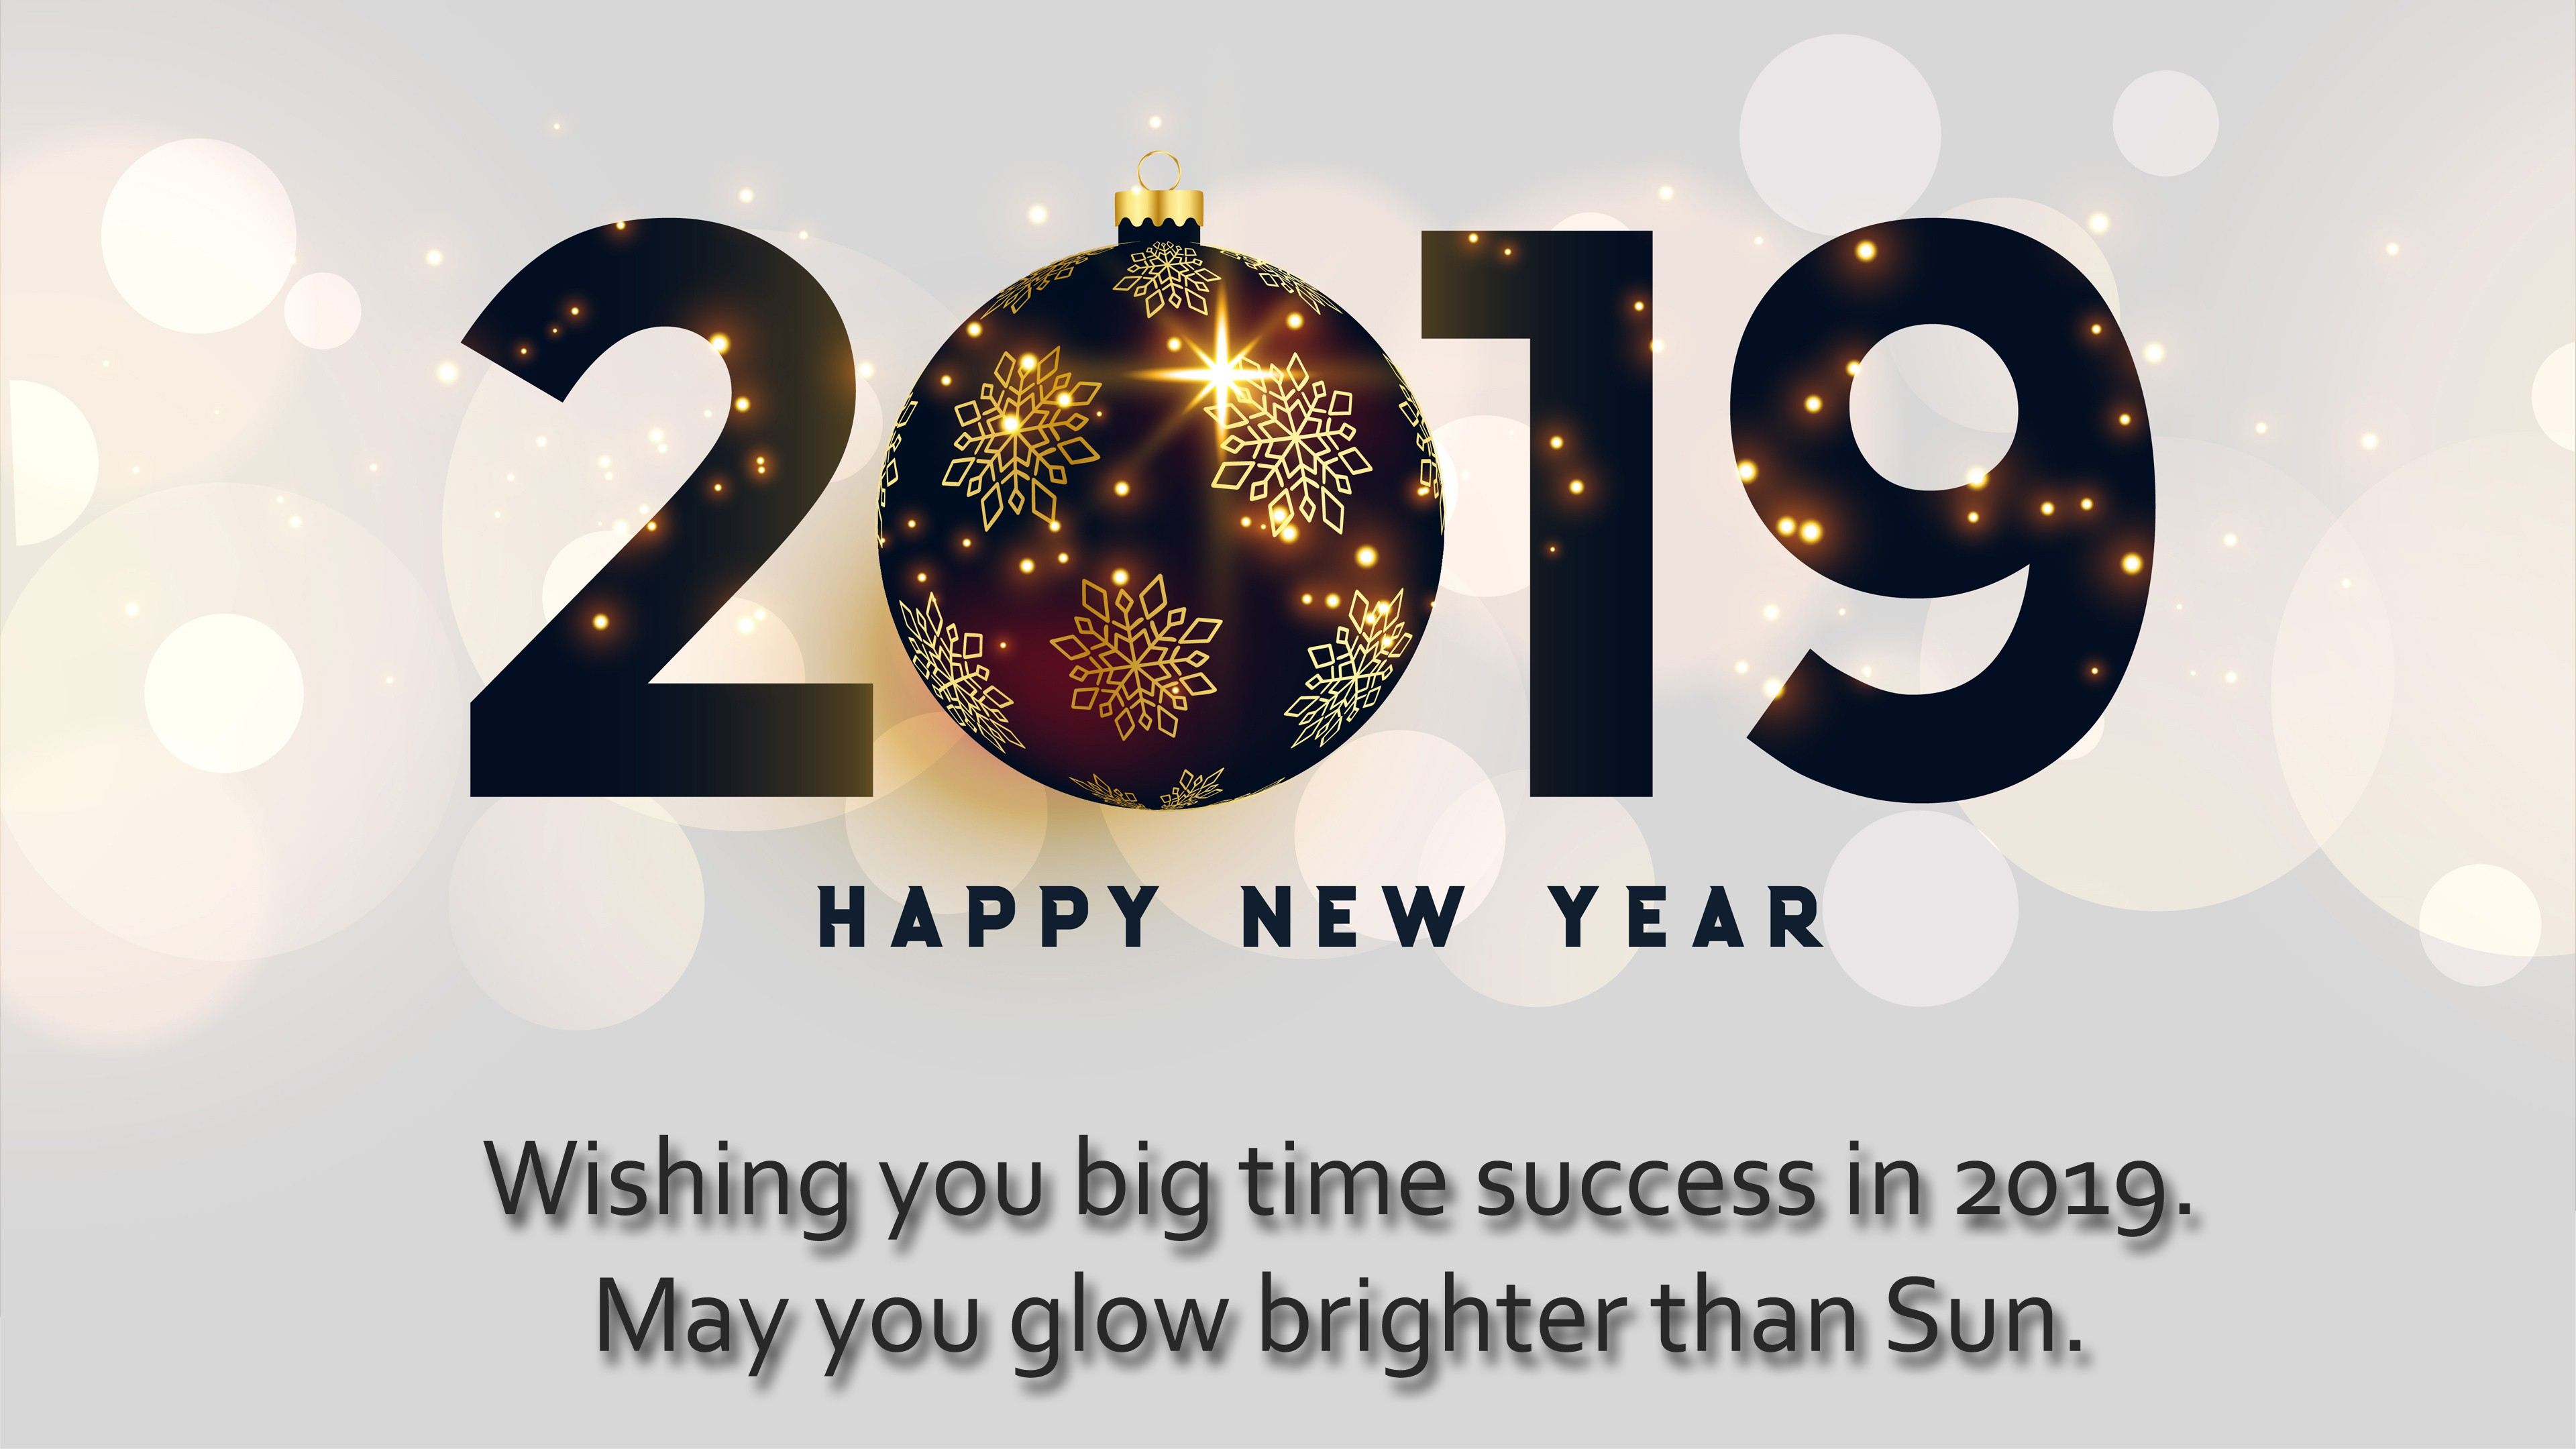 New Year Wishes Wallpapers - Happy New Year 2019 4k , HD Wallpaper & Backgrounds